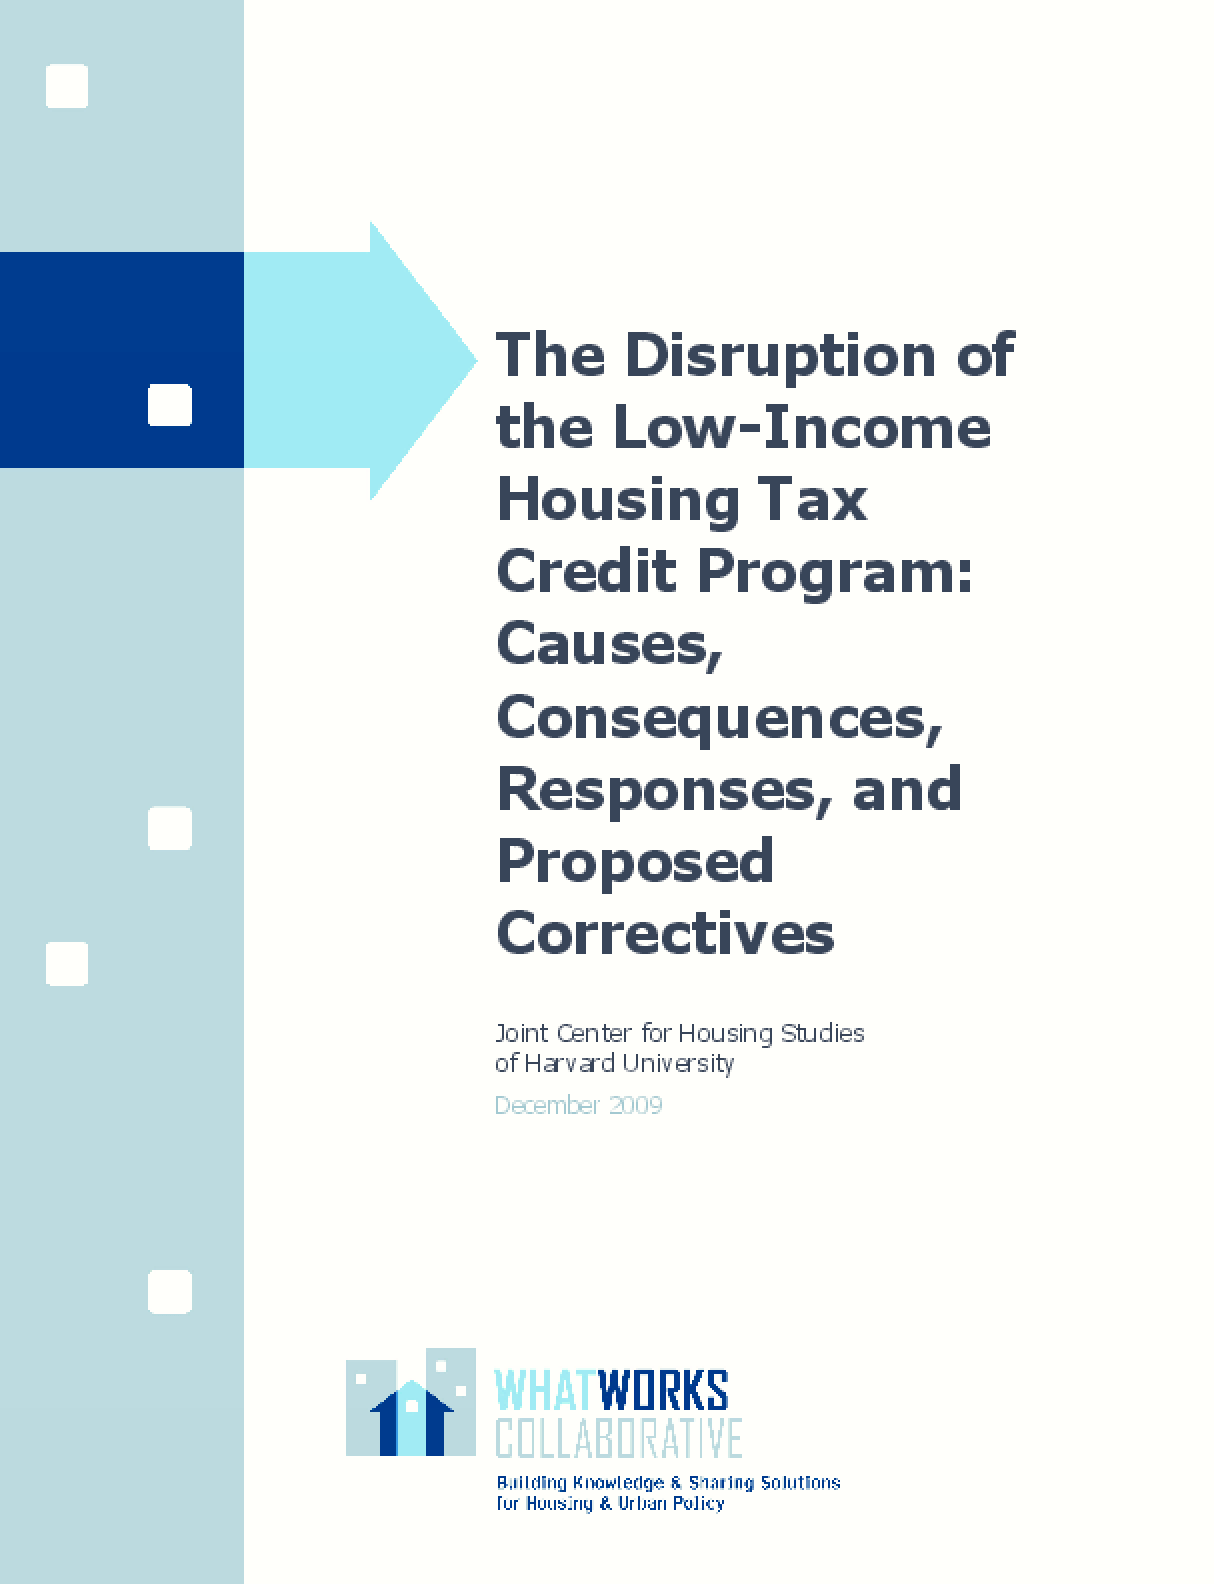 The Disruption of the Low-Income Housing Tax Credit Program: Causes, Consequences, Responses, and Proposed Correctives